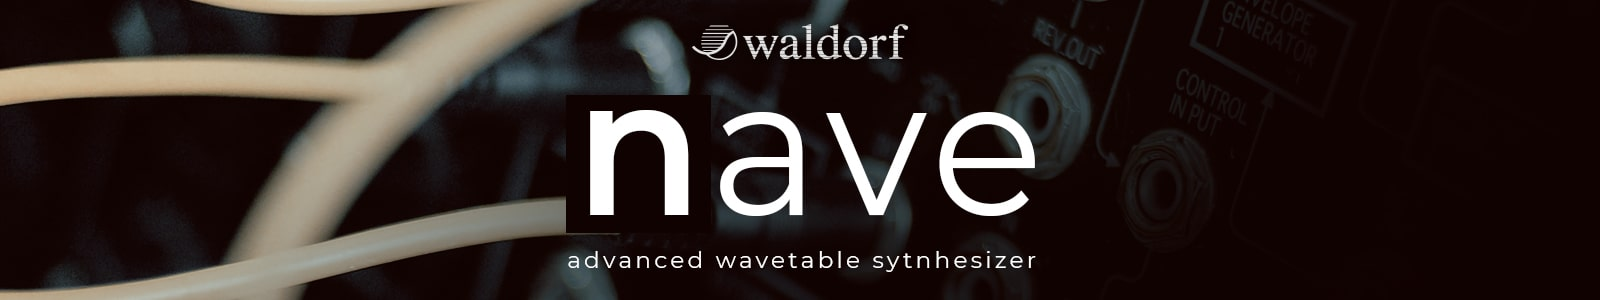 nave by waldorf